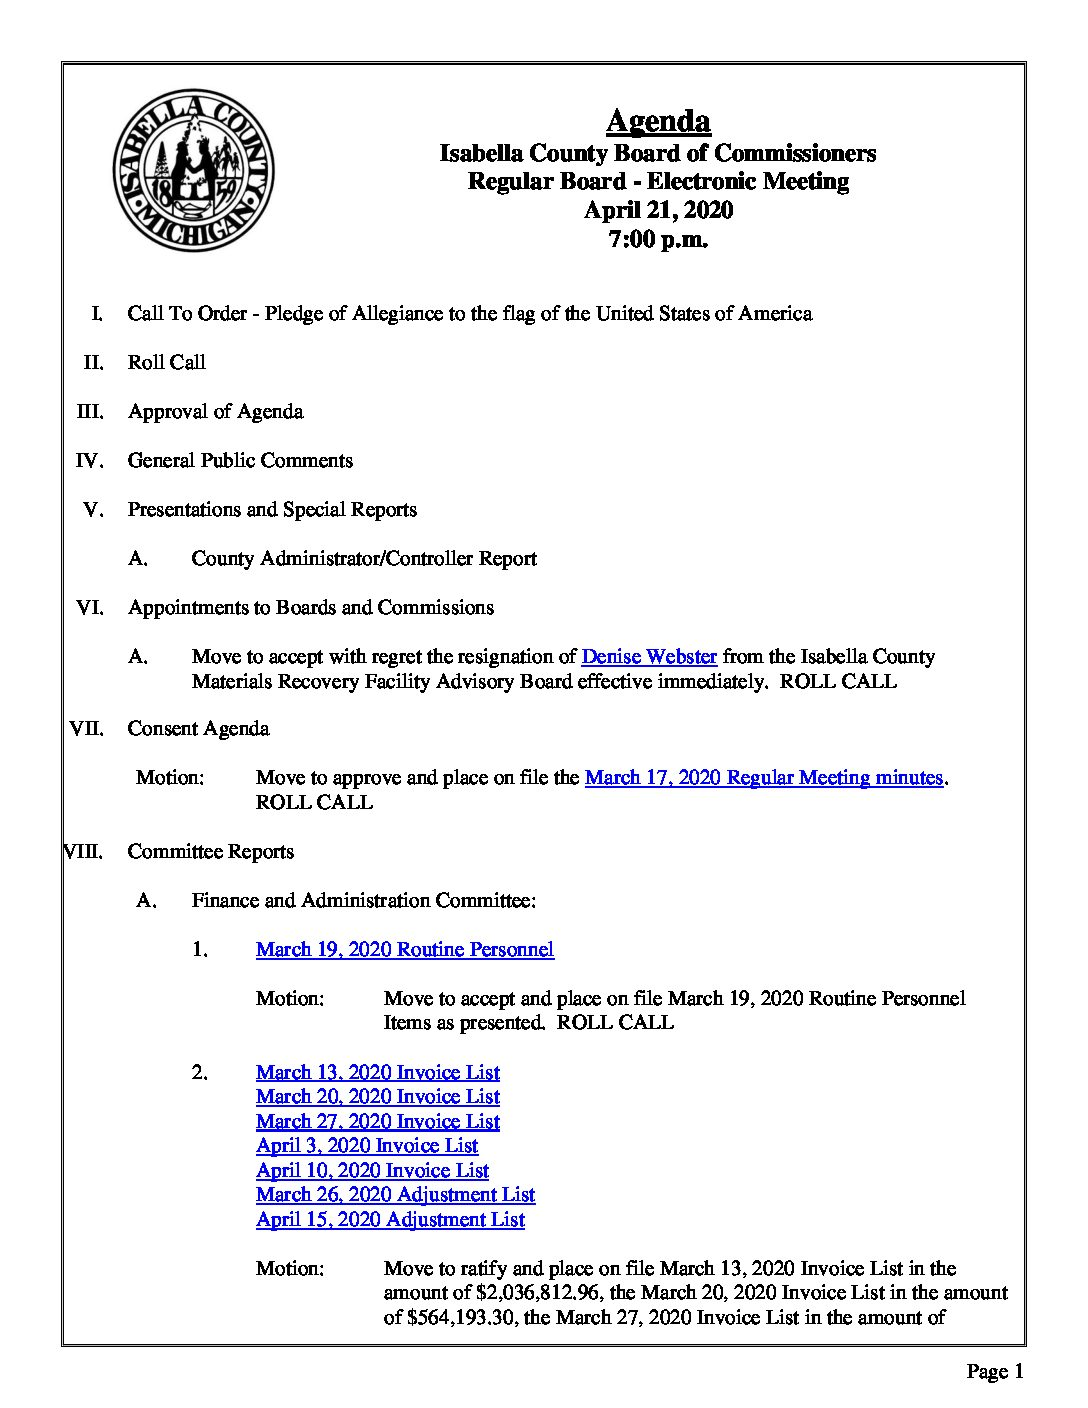 preview image of first page April 21, 2020 Agenda